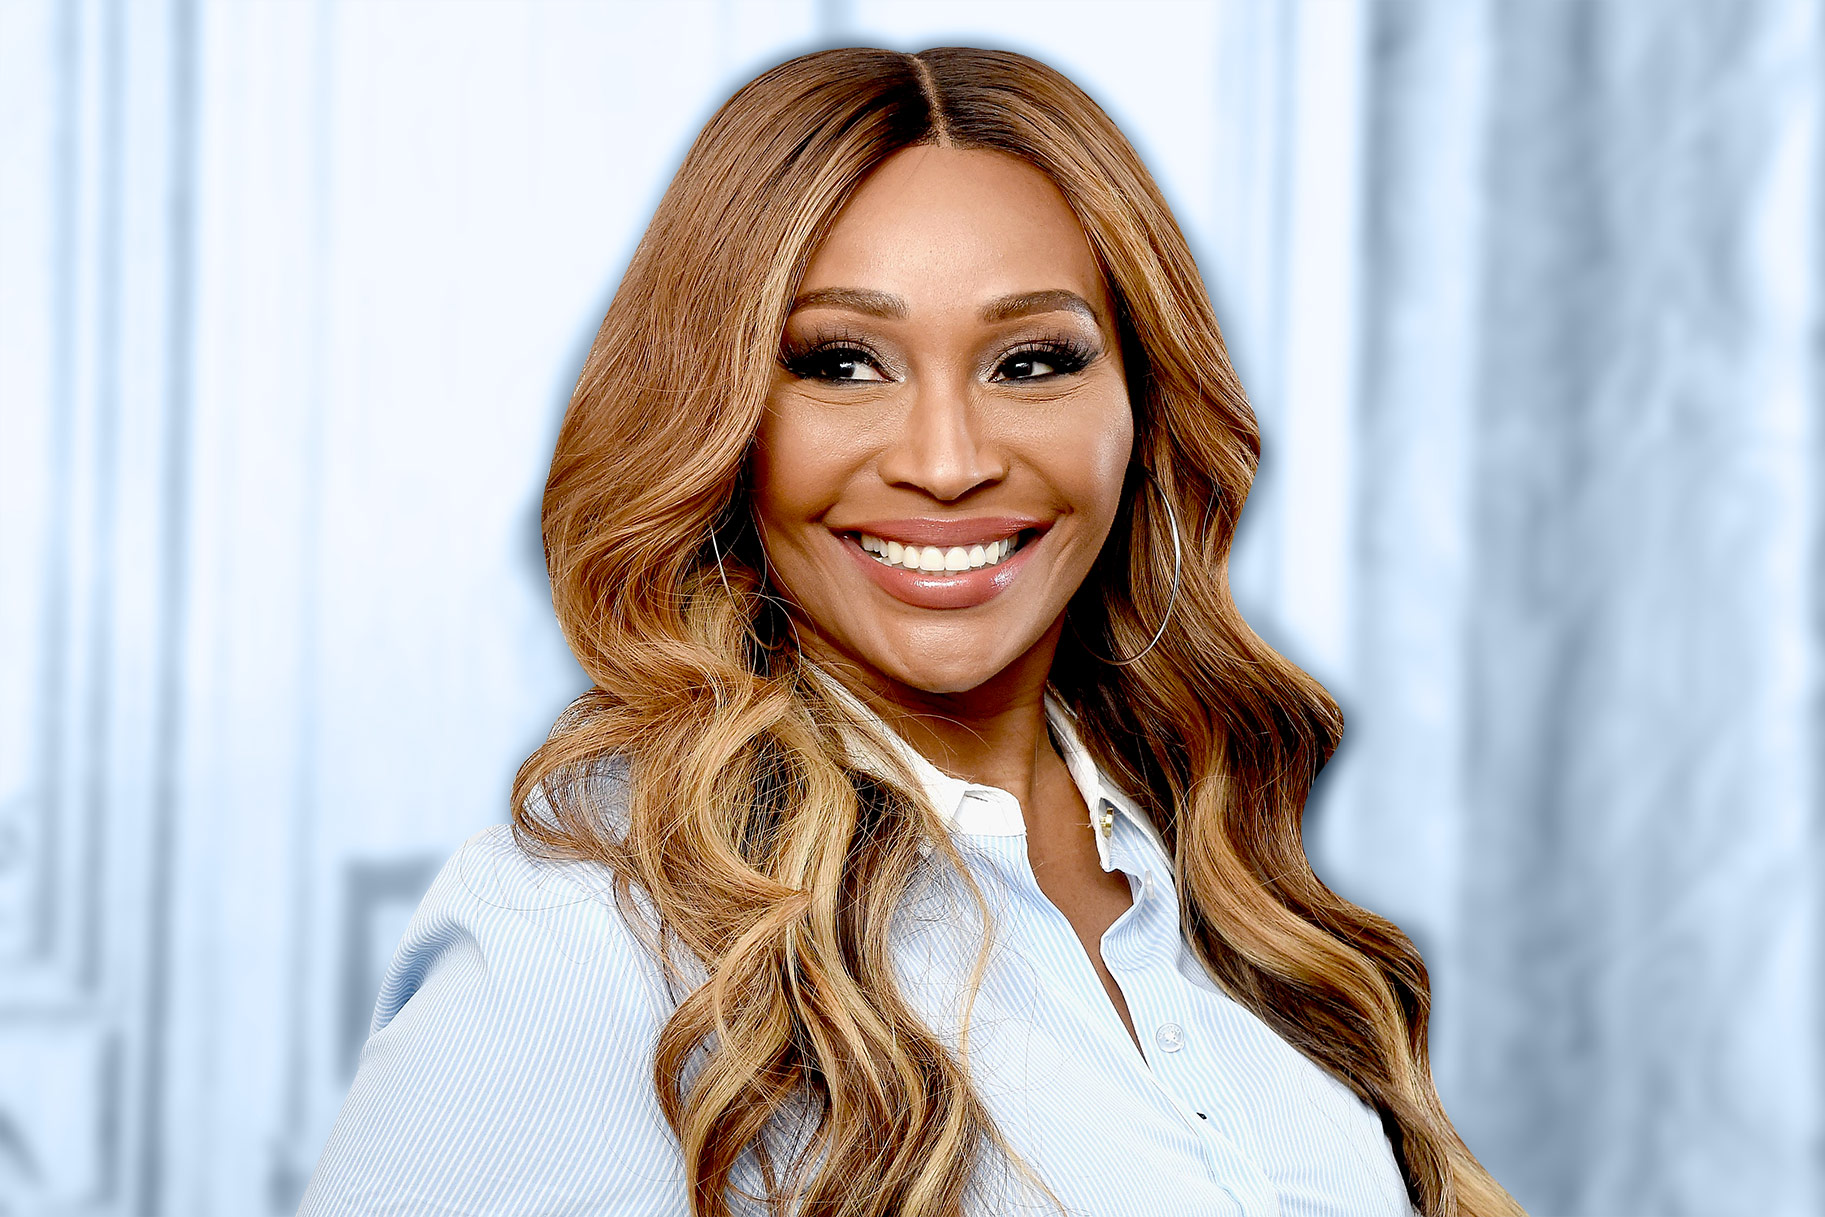 Cynthia Bailey Advises Fans To Do Their Best During These Hard Times